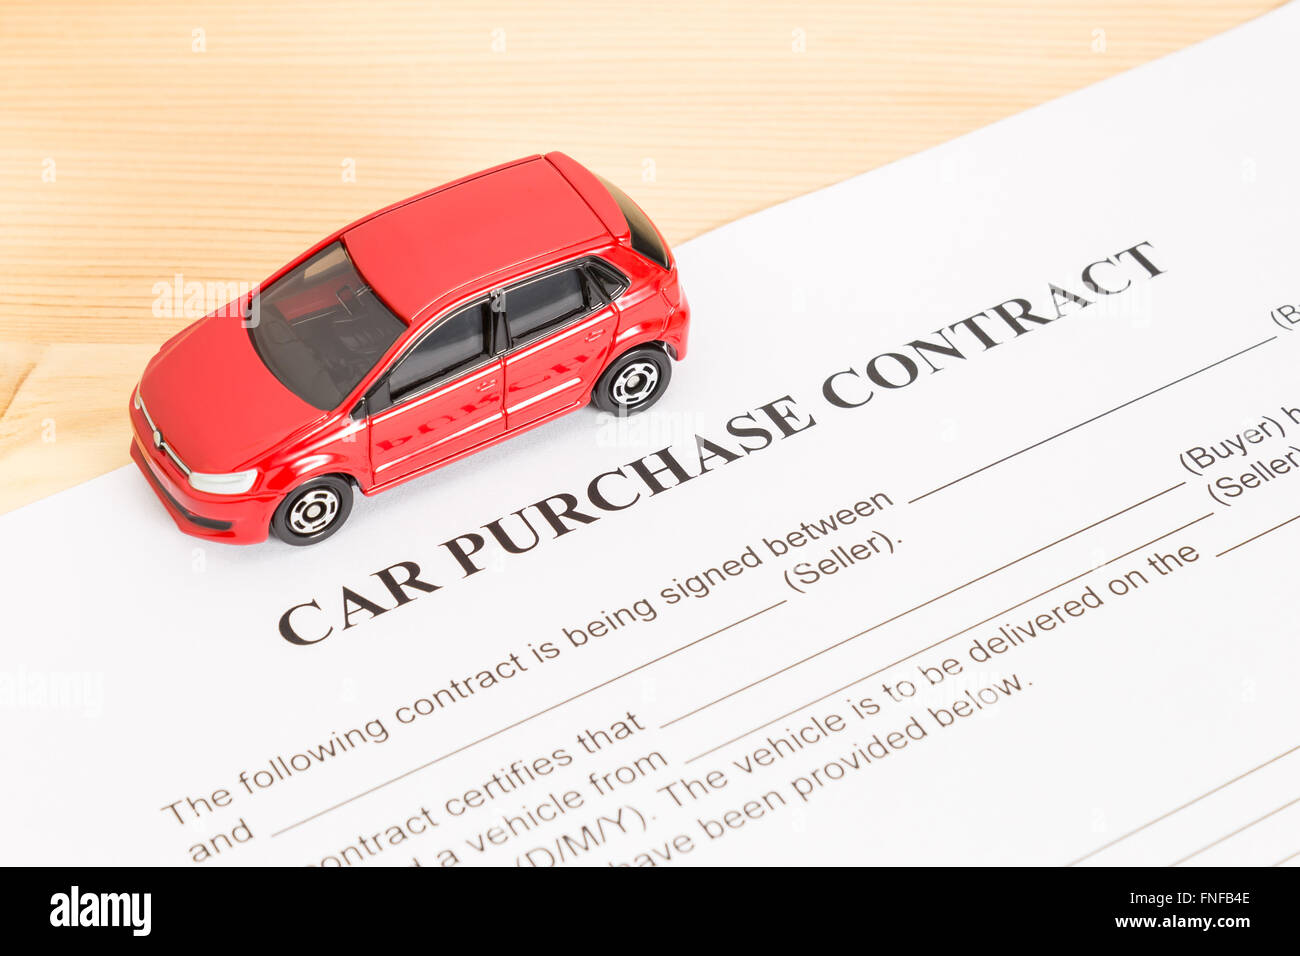 Car Purchase Contract With Red Car On Left View Auto Purchase Stock